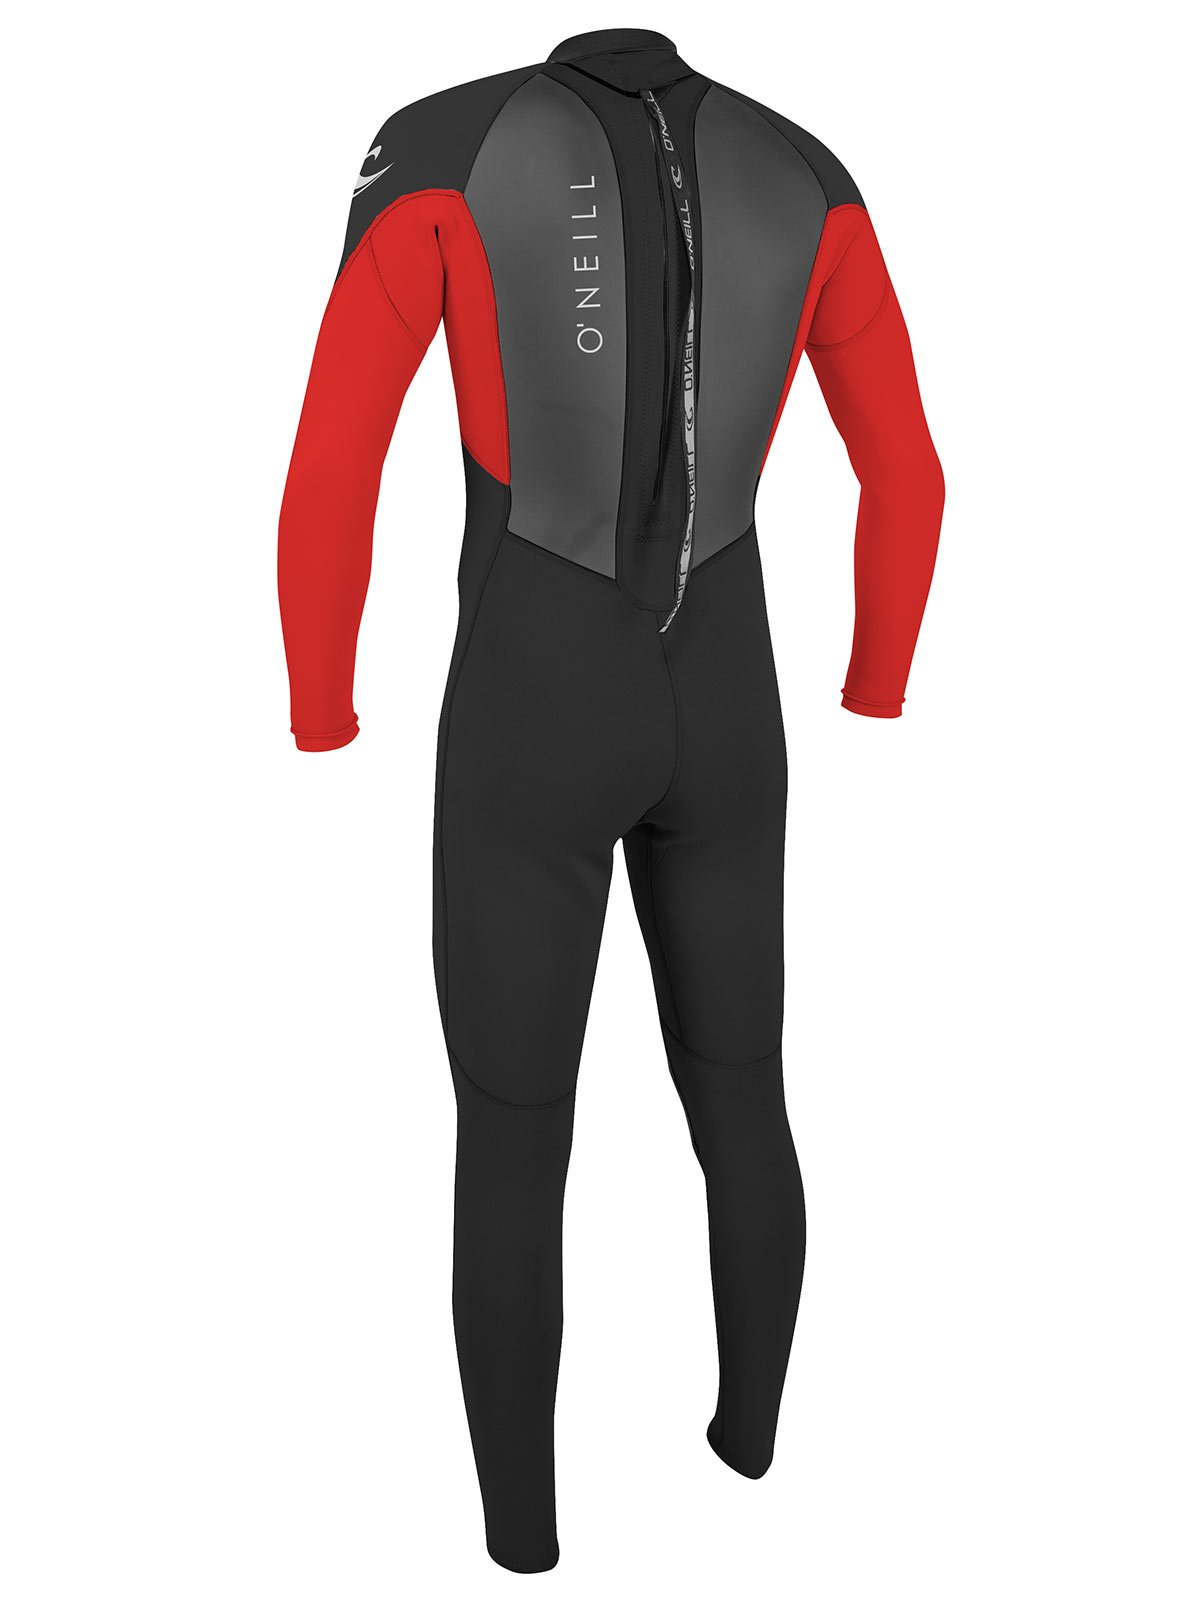 O'Neill Reactor 2 Kids Full Wetsuit 4 Black/red (5044IS) by O'Neill Wetsuits (Image #3)